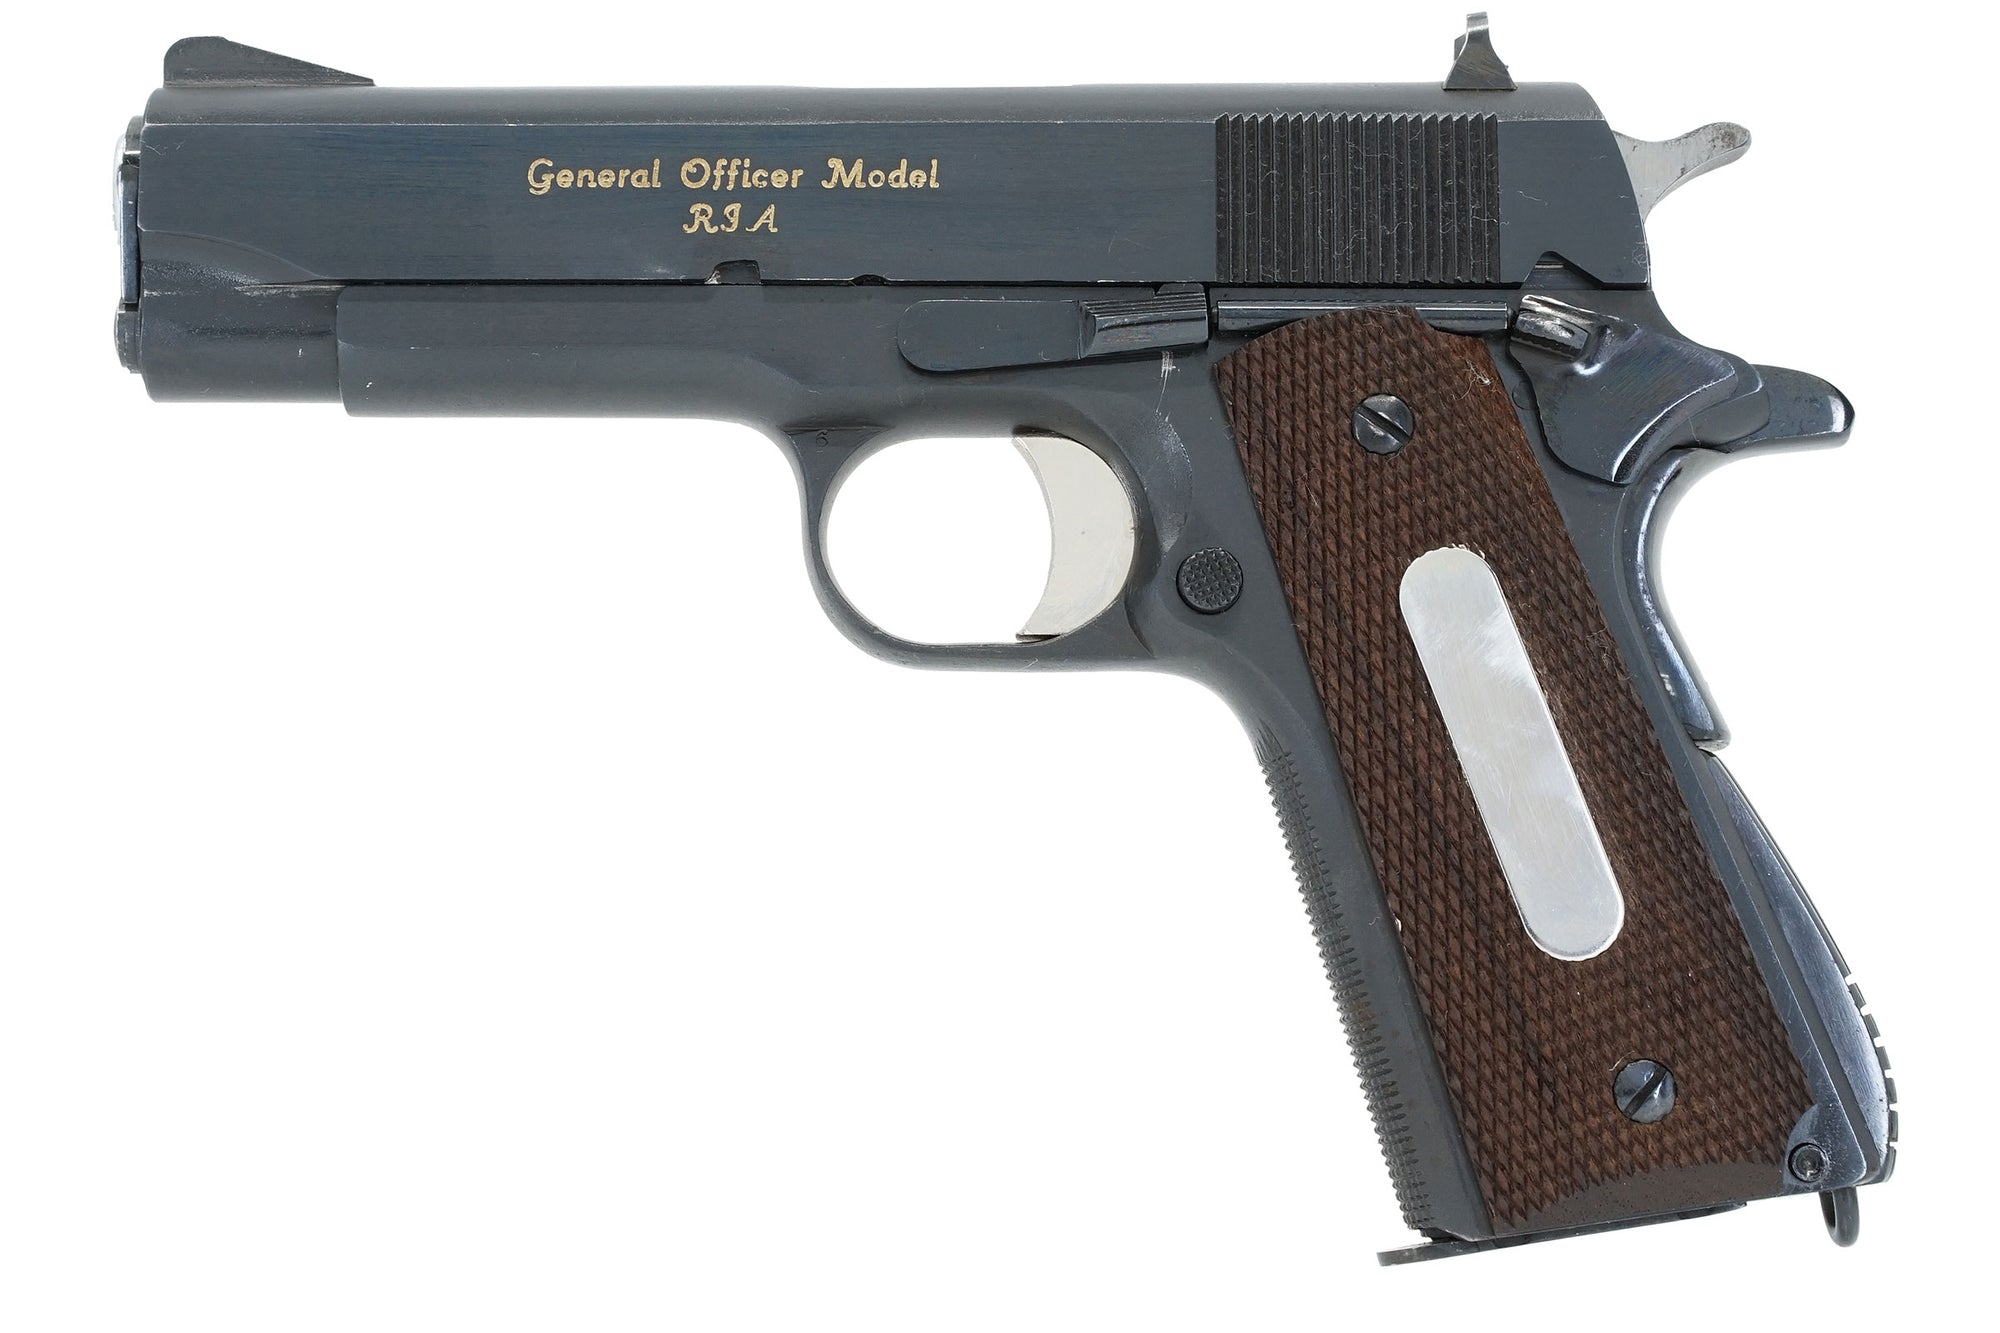 Rock Island Arsenal M15 General Officer Model 45ACP SN:GO 270 James T. Tuberty